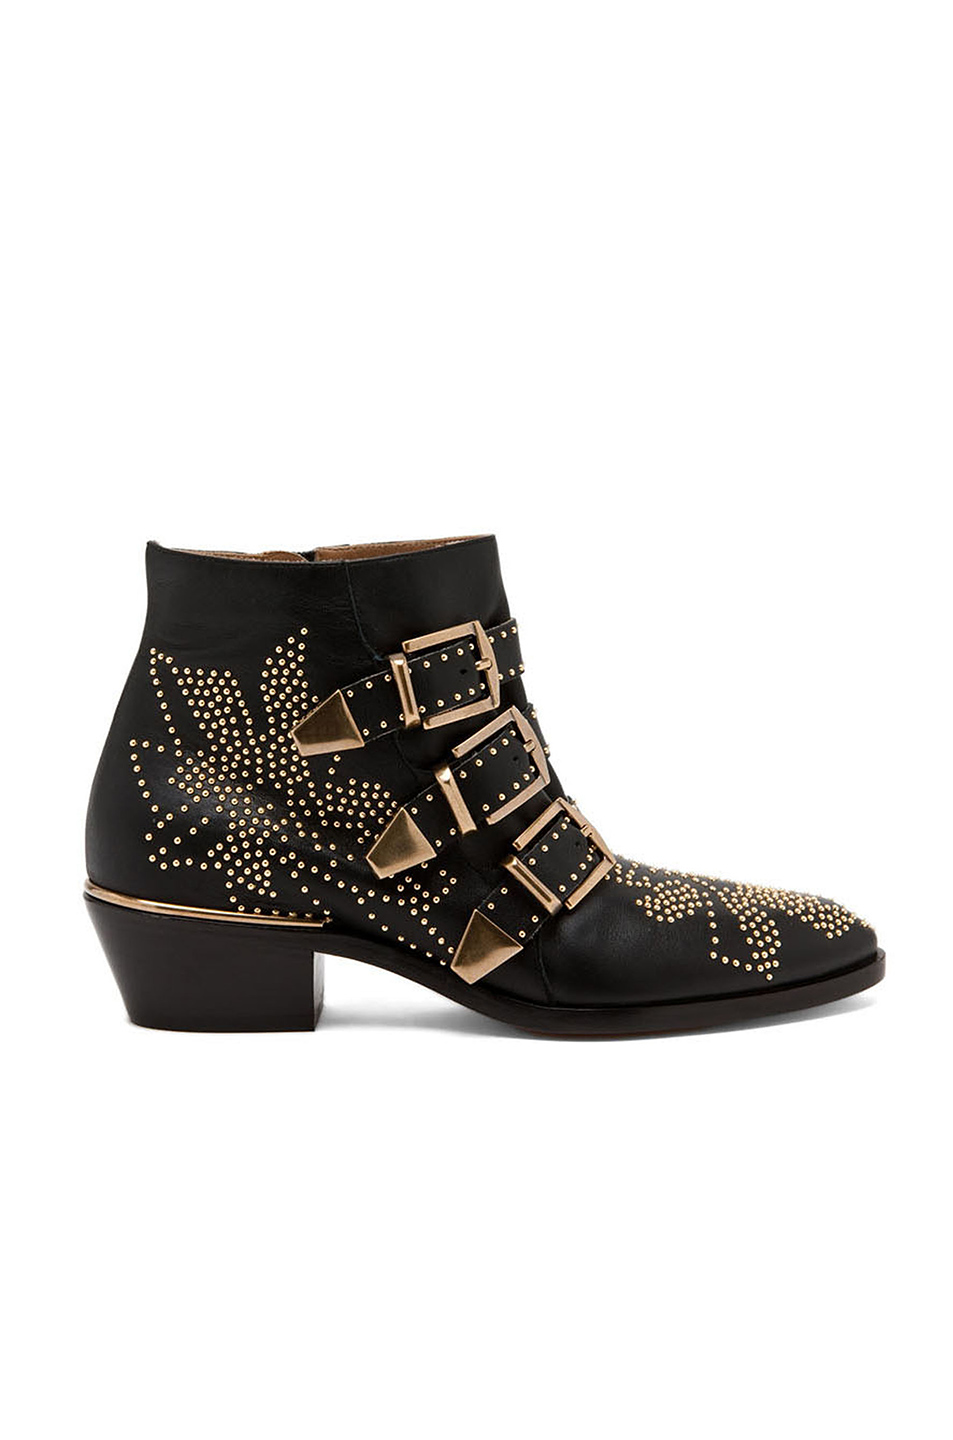 7 stores in stock chlo susanna studded buckled leather ankle boots black modesens. Black Bedroom Furniture Sets. Home Design Ideas